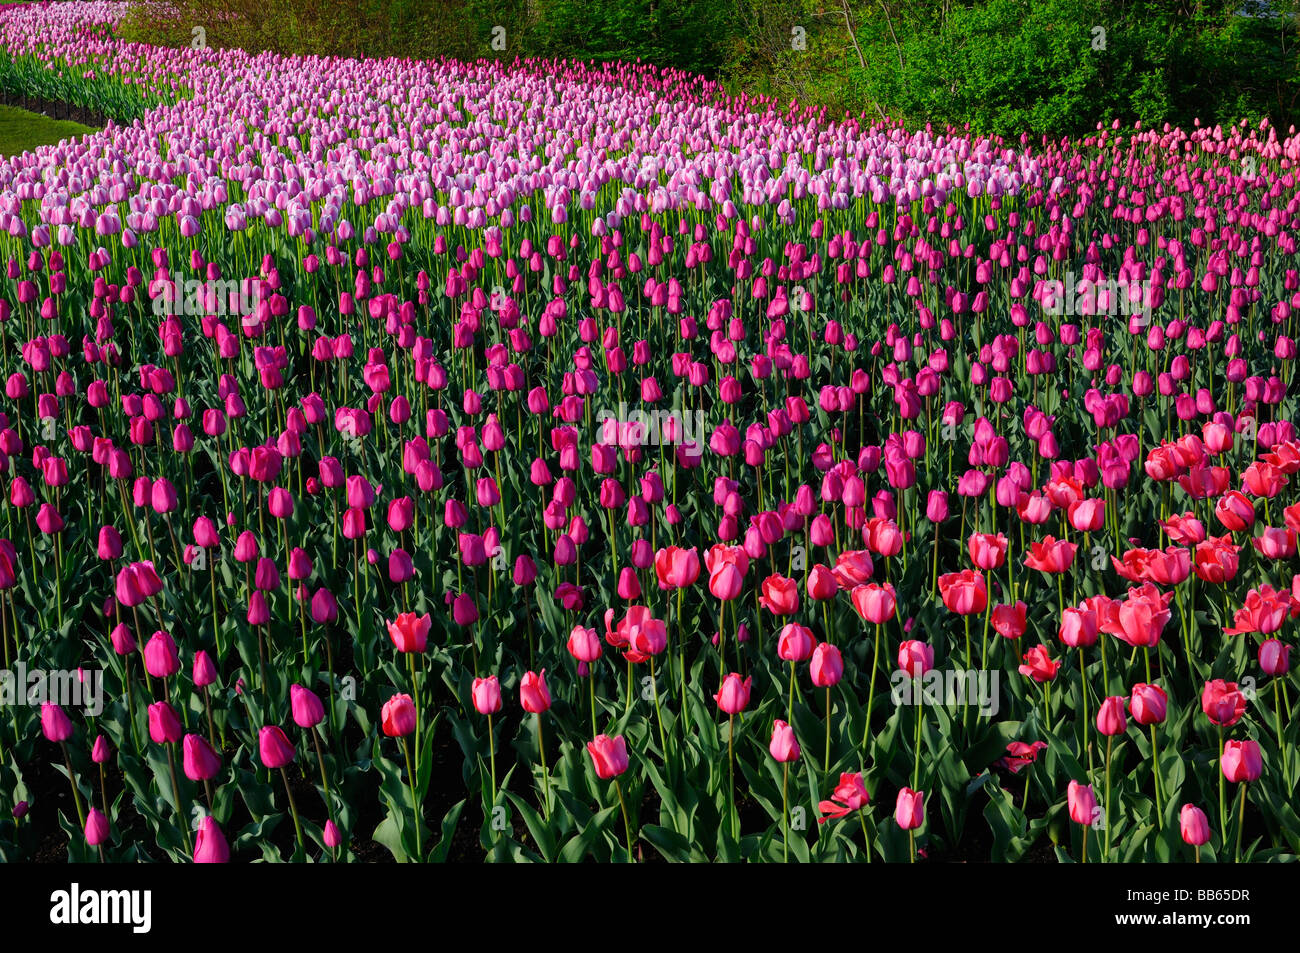 Sweeping mass of Red Impression Barcelona and Ollioules Tulips at the Ottawa Tulip Festival garden - Stock Image